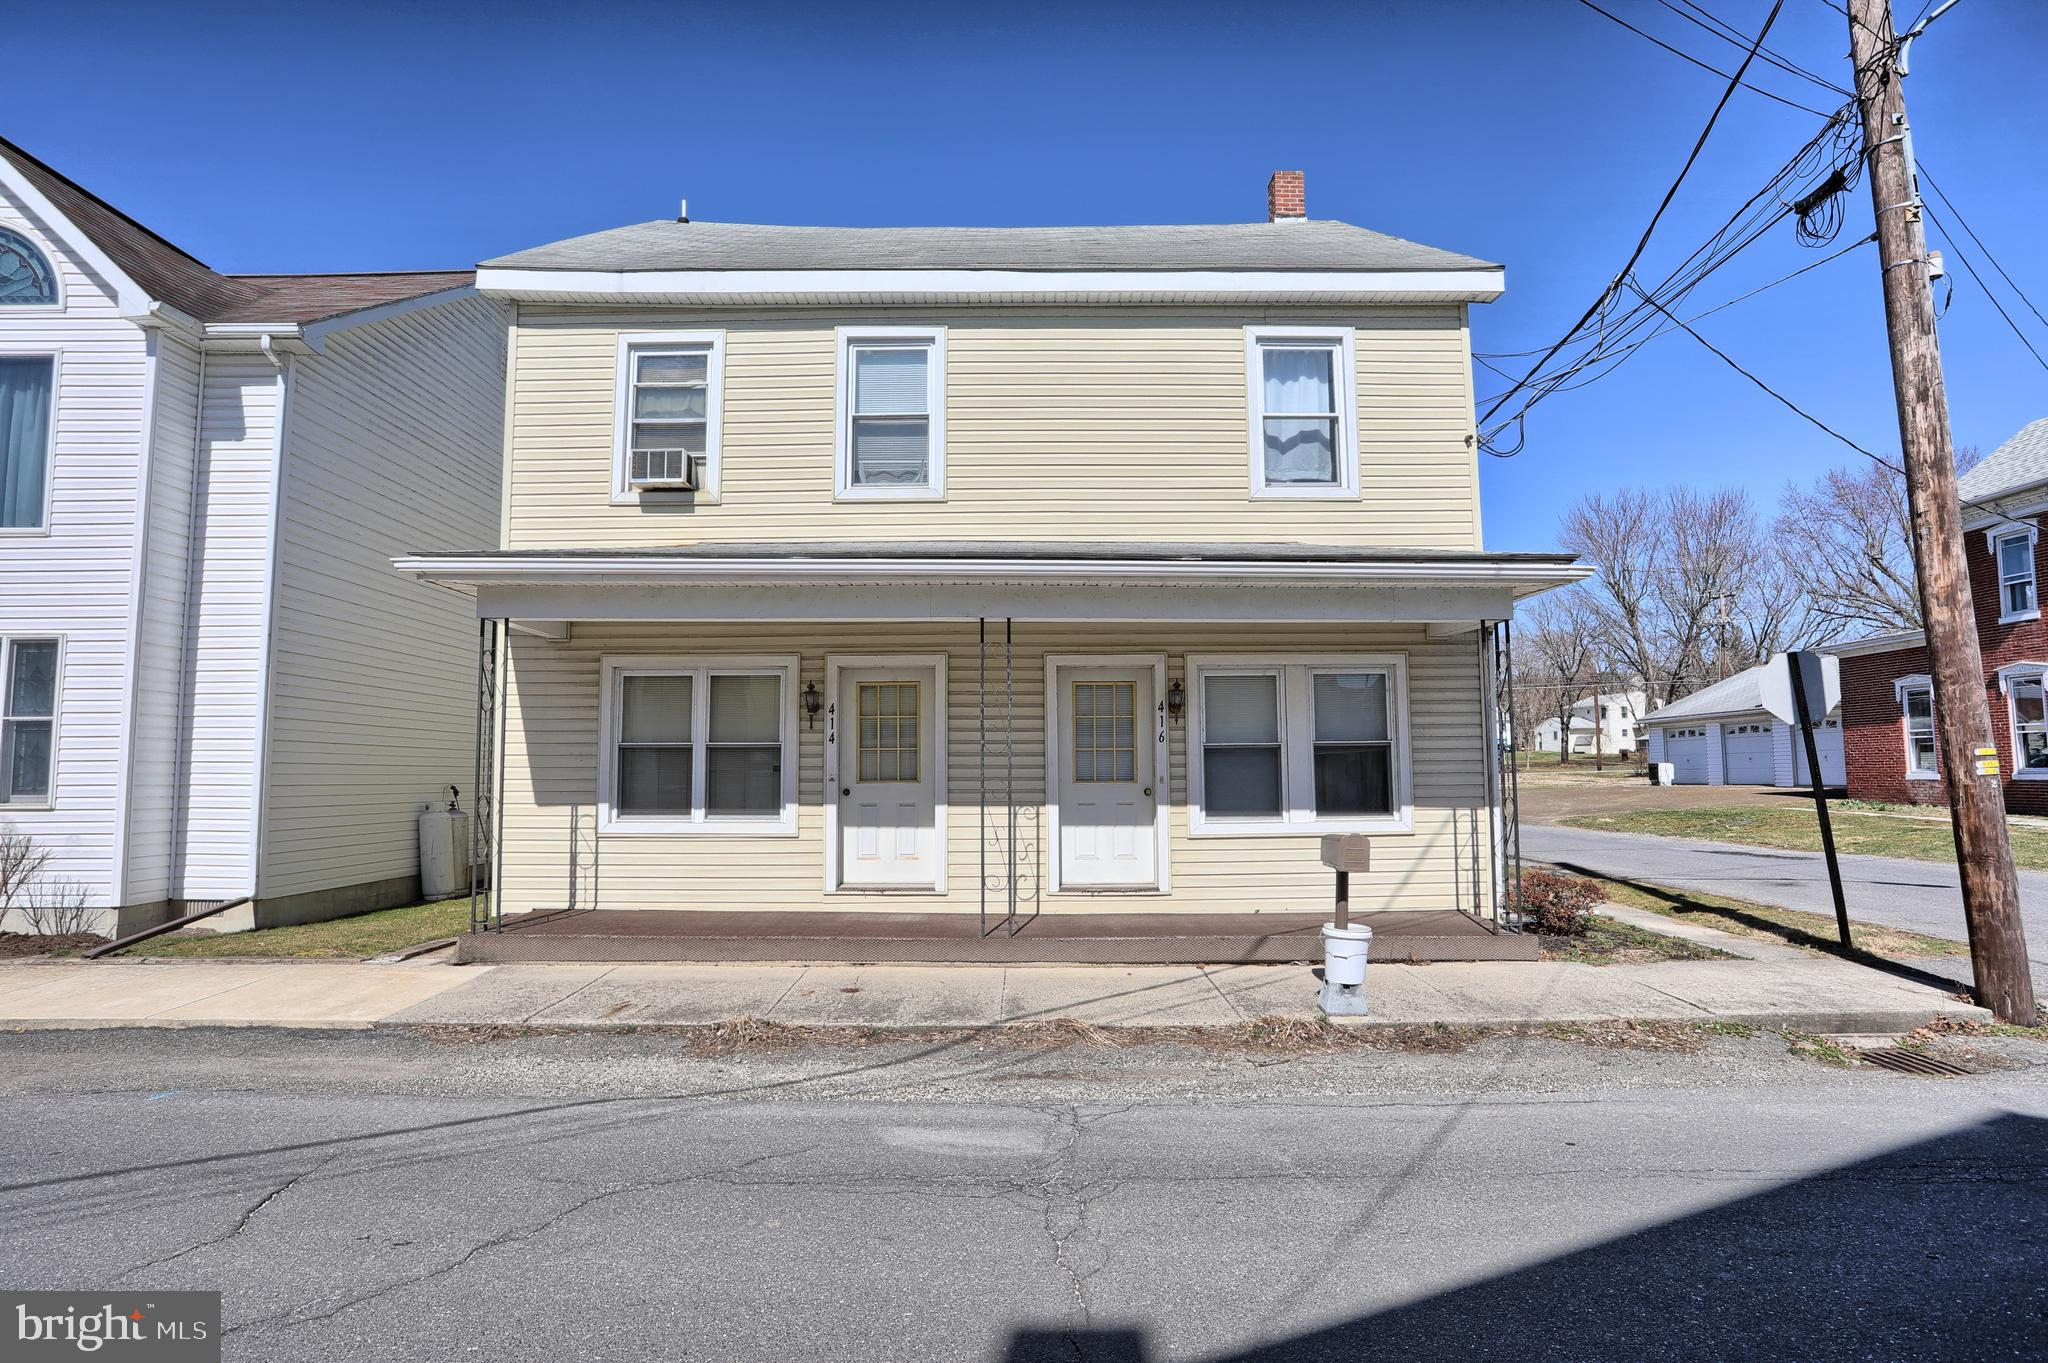 414 N FRONT STREET, LIVERPOOL, PA 17045